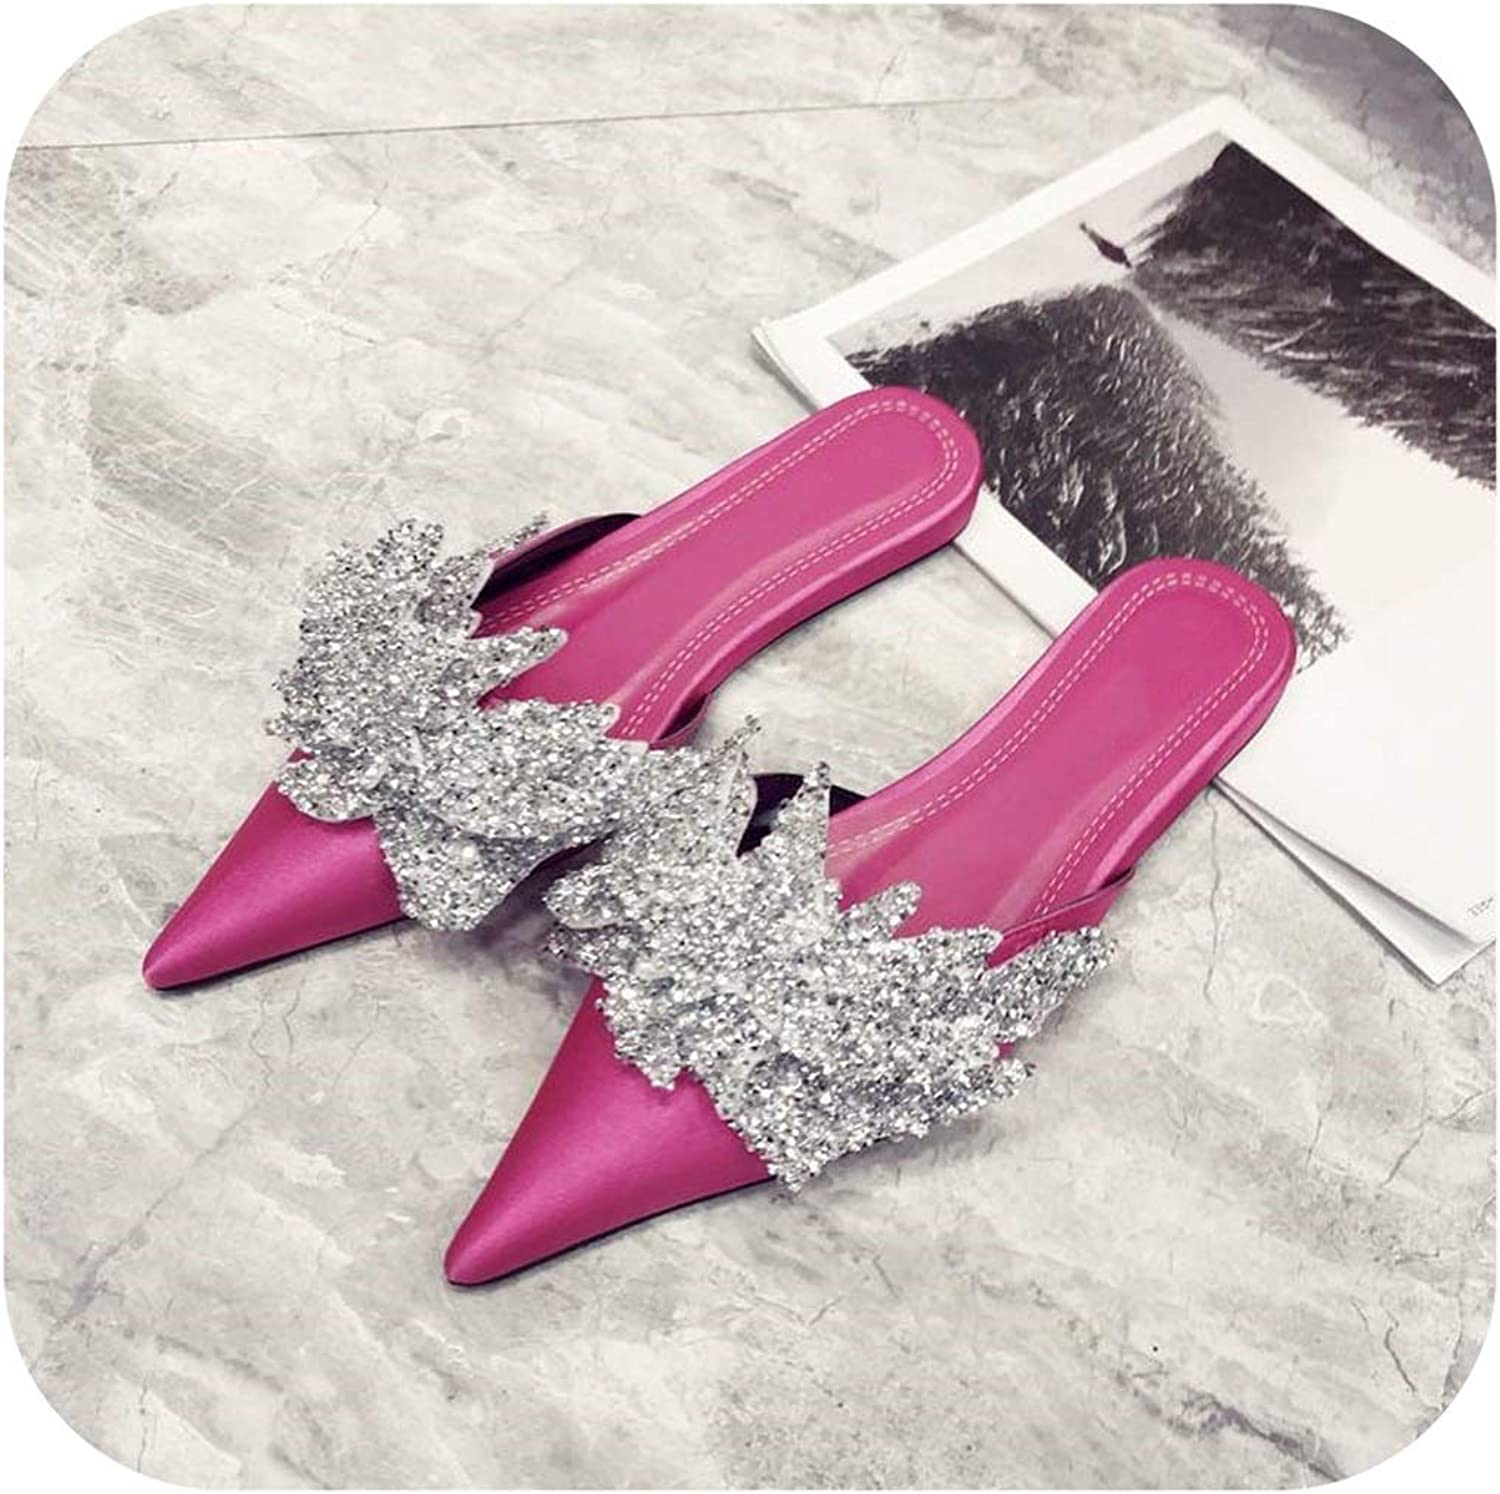 Satin Pointed Toe Sandals Flowers Rhinestone flip Flop Muller Slippers Flat shoes